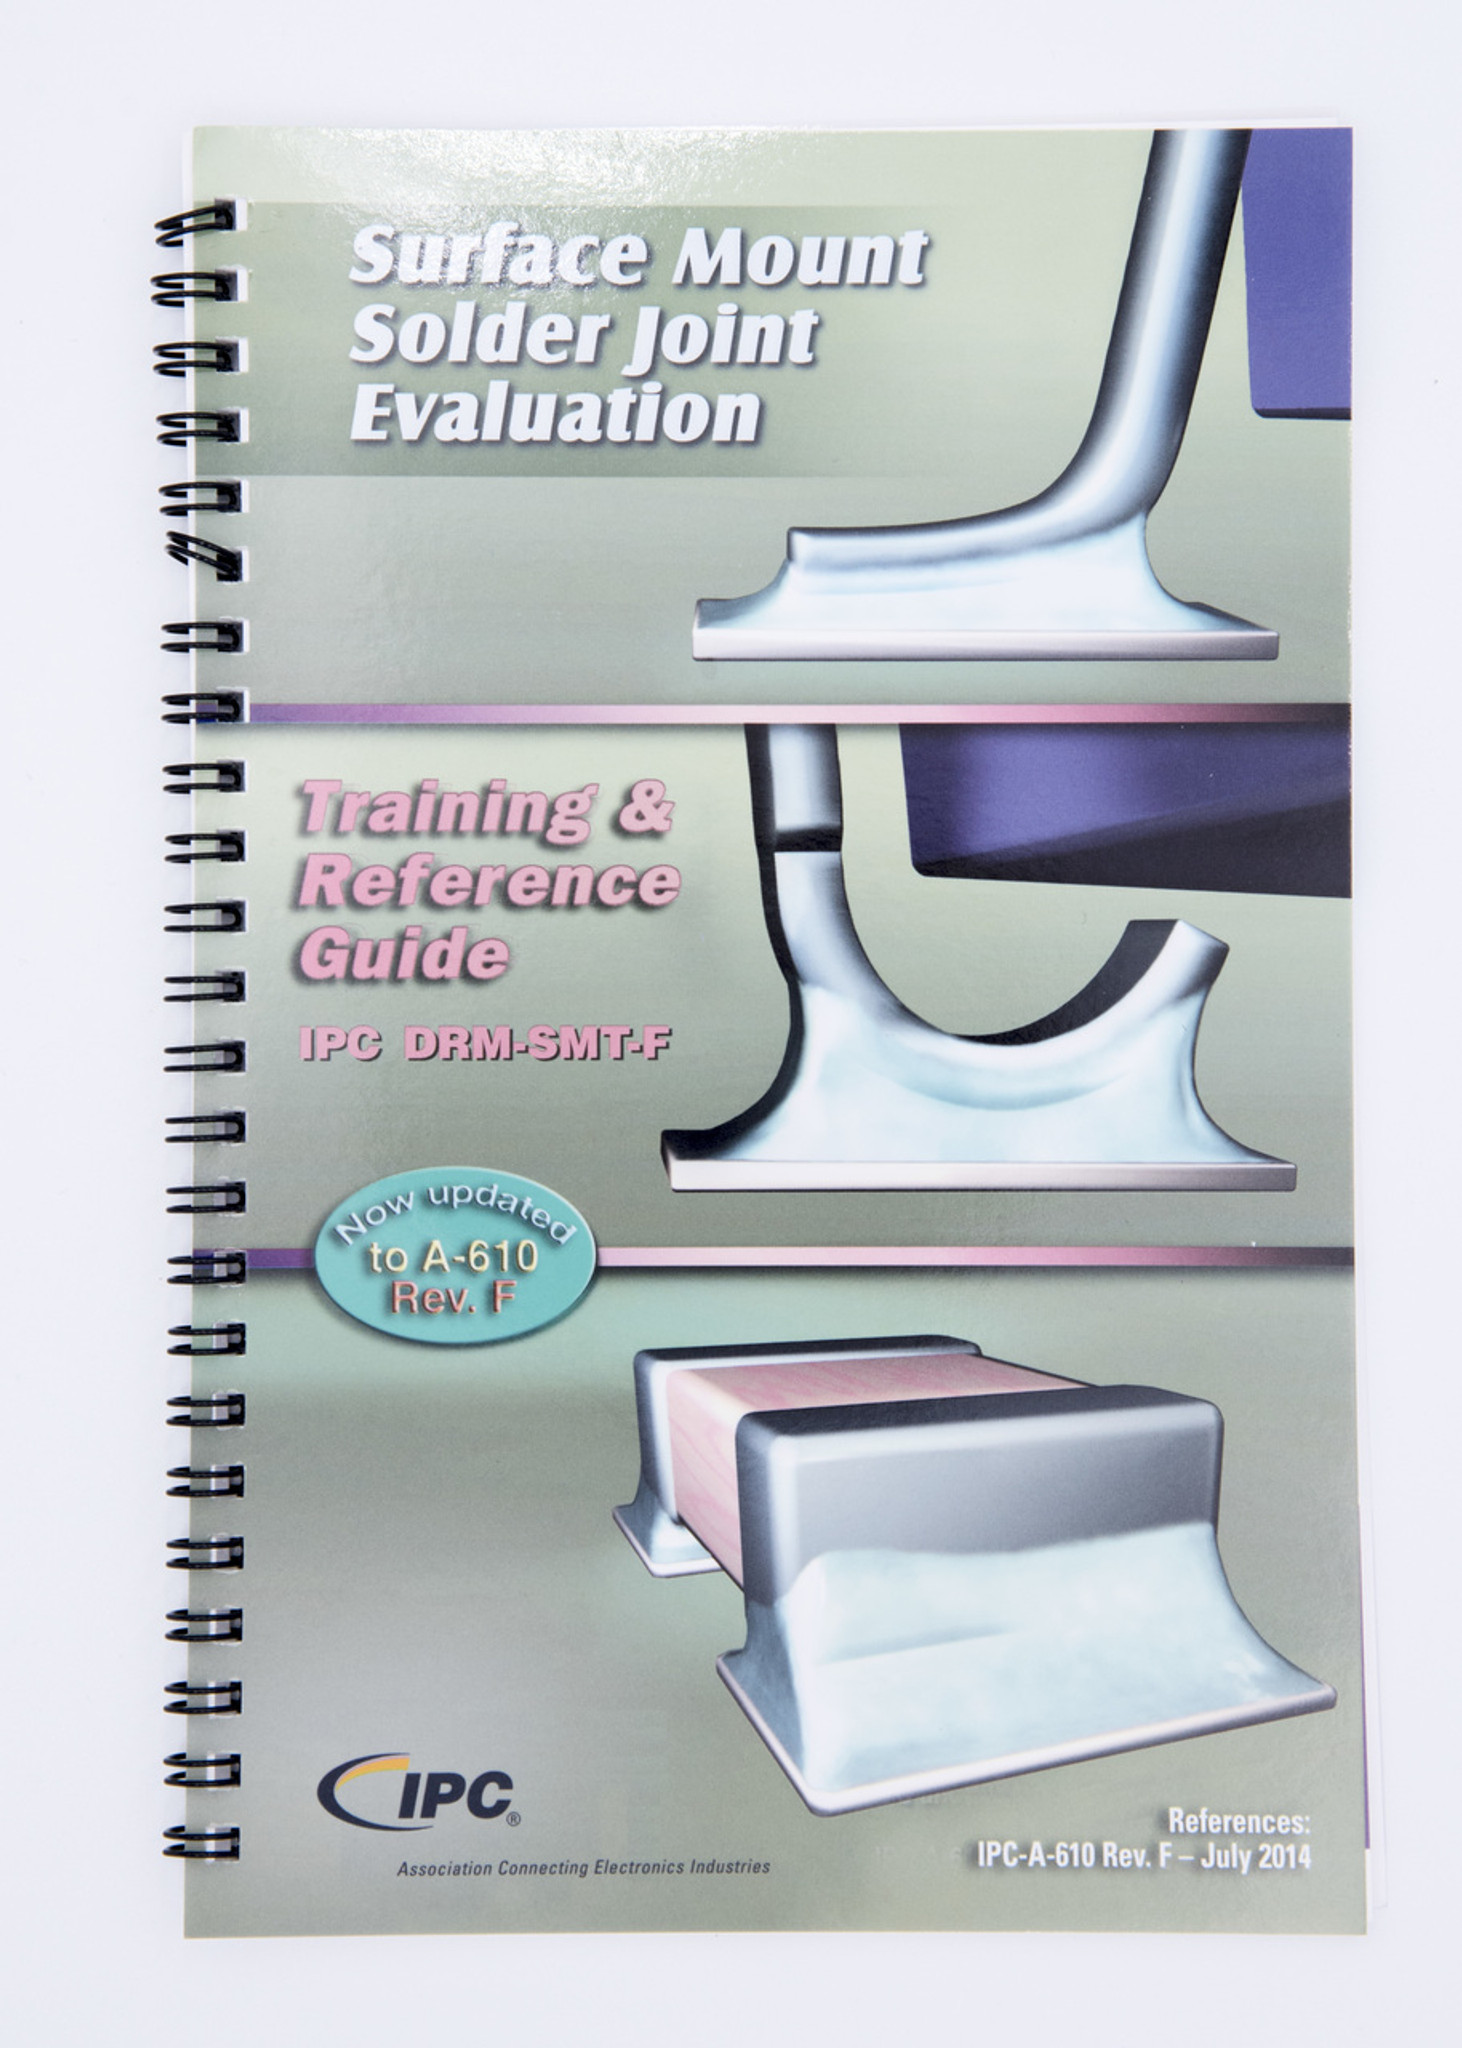 IPC DRM-SMT-G Surface Mount Solder Joint Evaluation Training & Reference  Guide